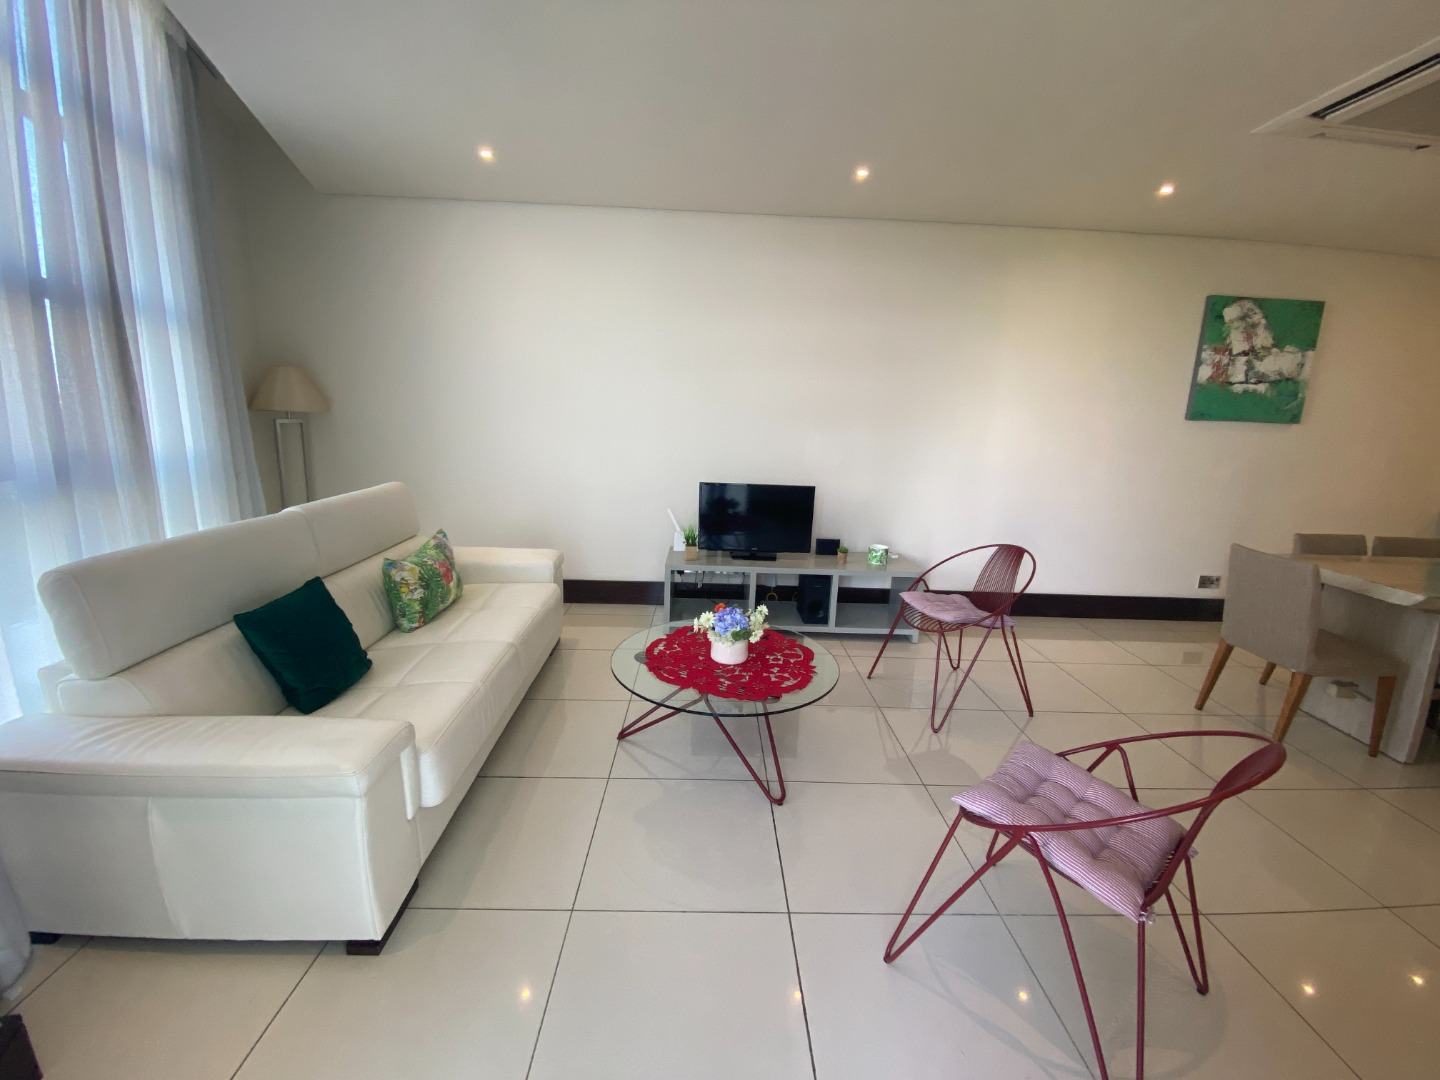 1 Bedroom Apartment / Flat For Sale in Grand Baie